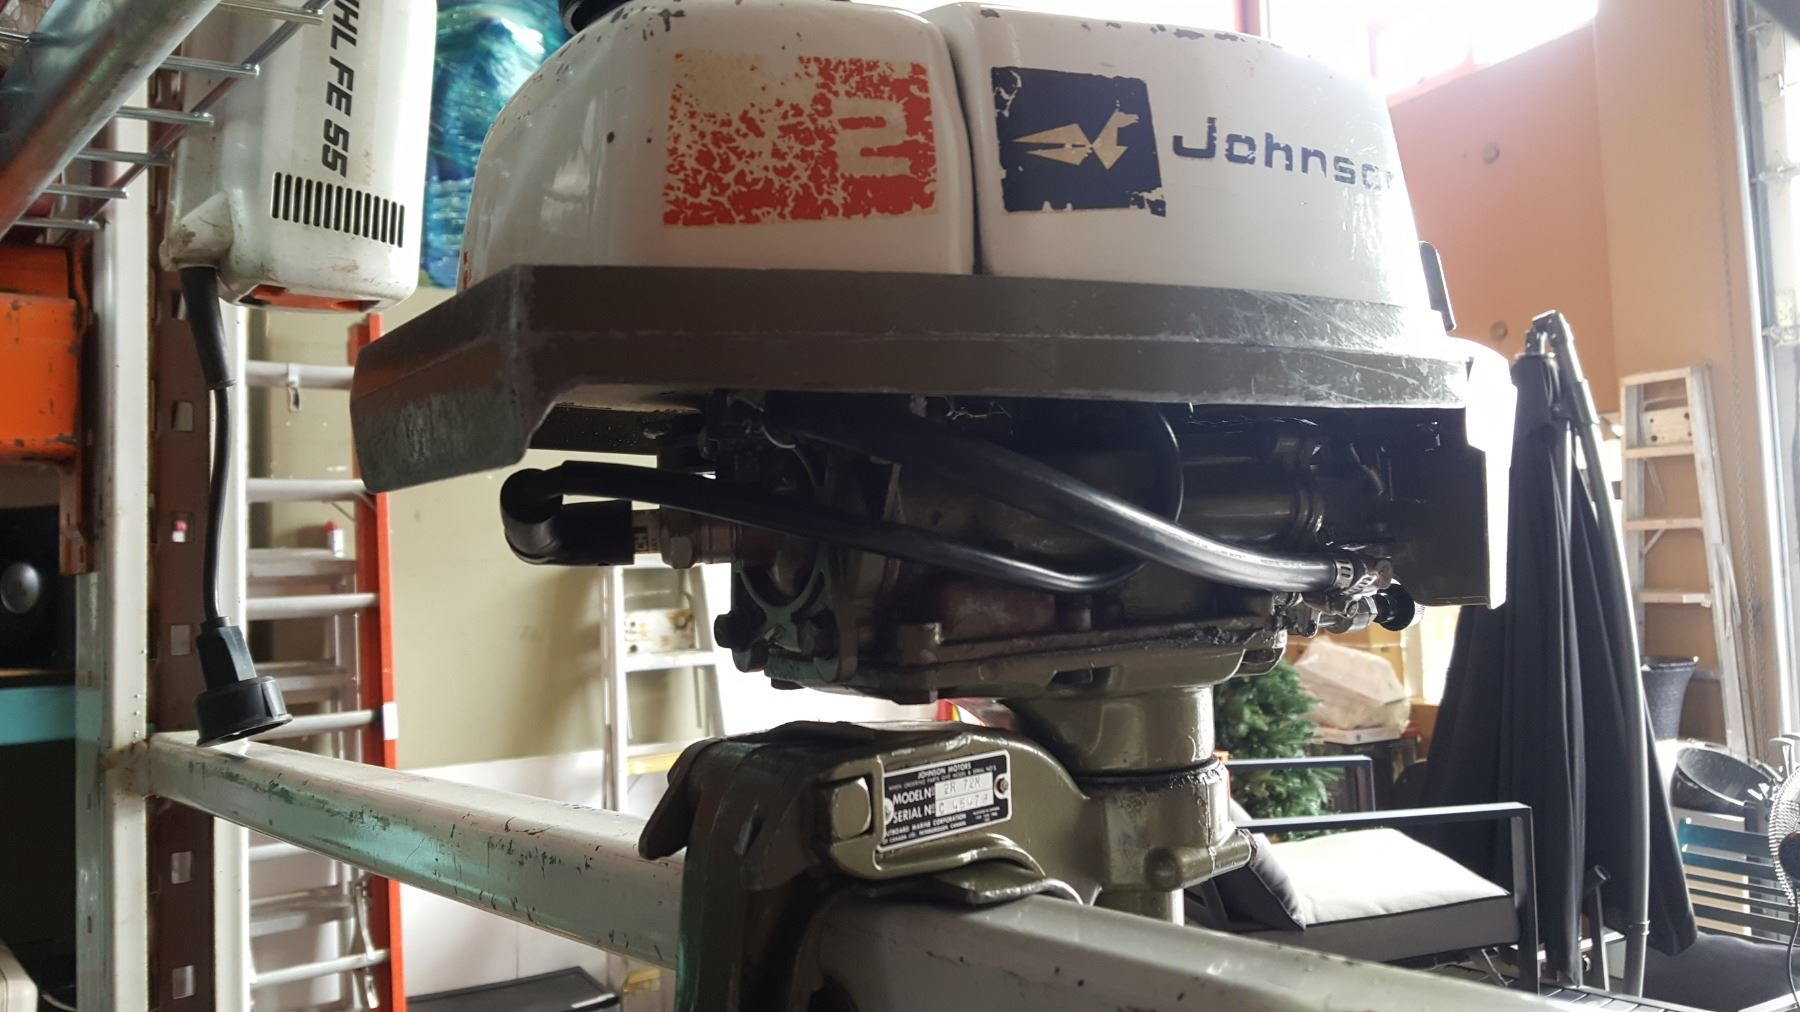 JOHNSON 2HP OUTBOARD MOTOR GOOD SPARK COMPRESSION POTENTIAL CARB ISSUES